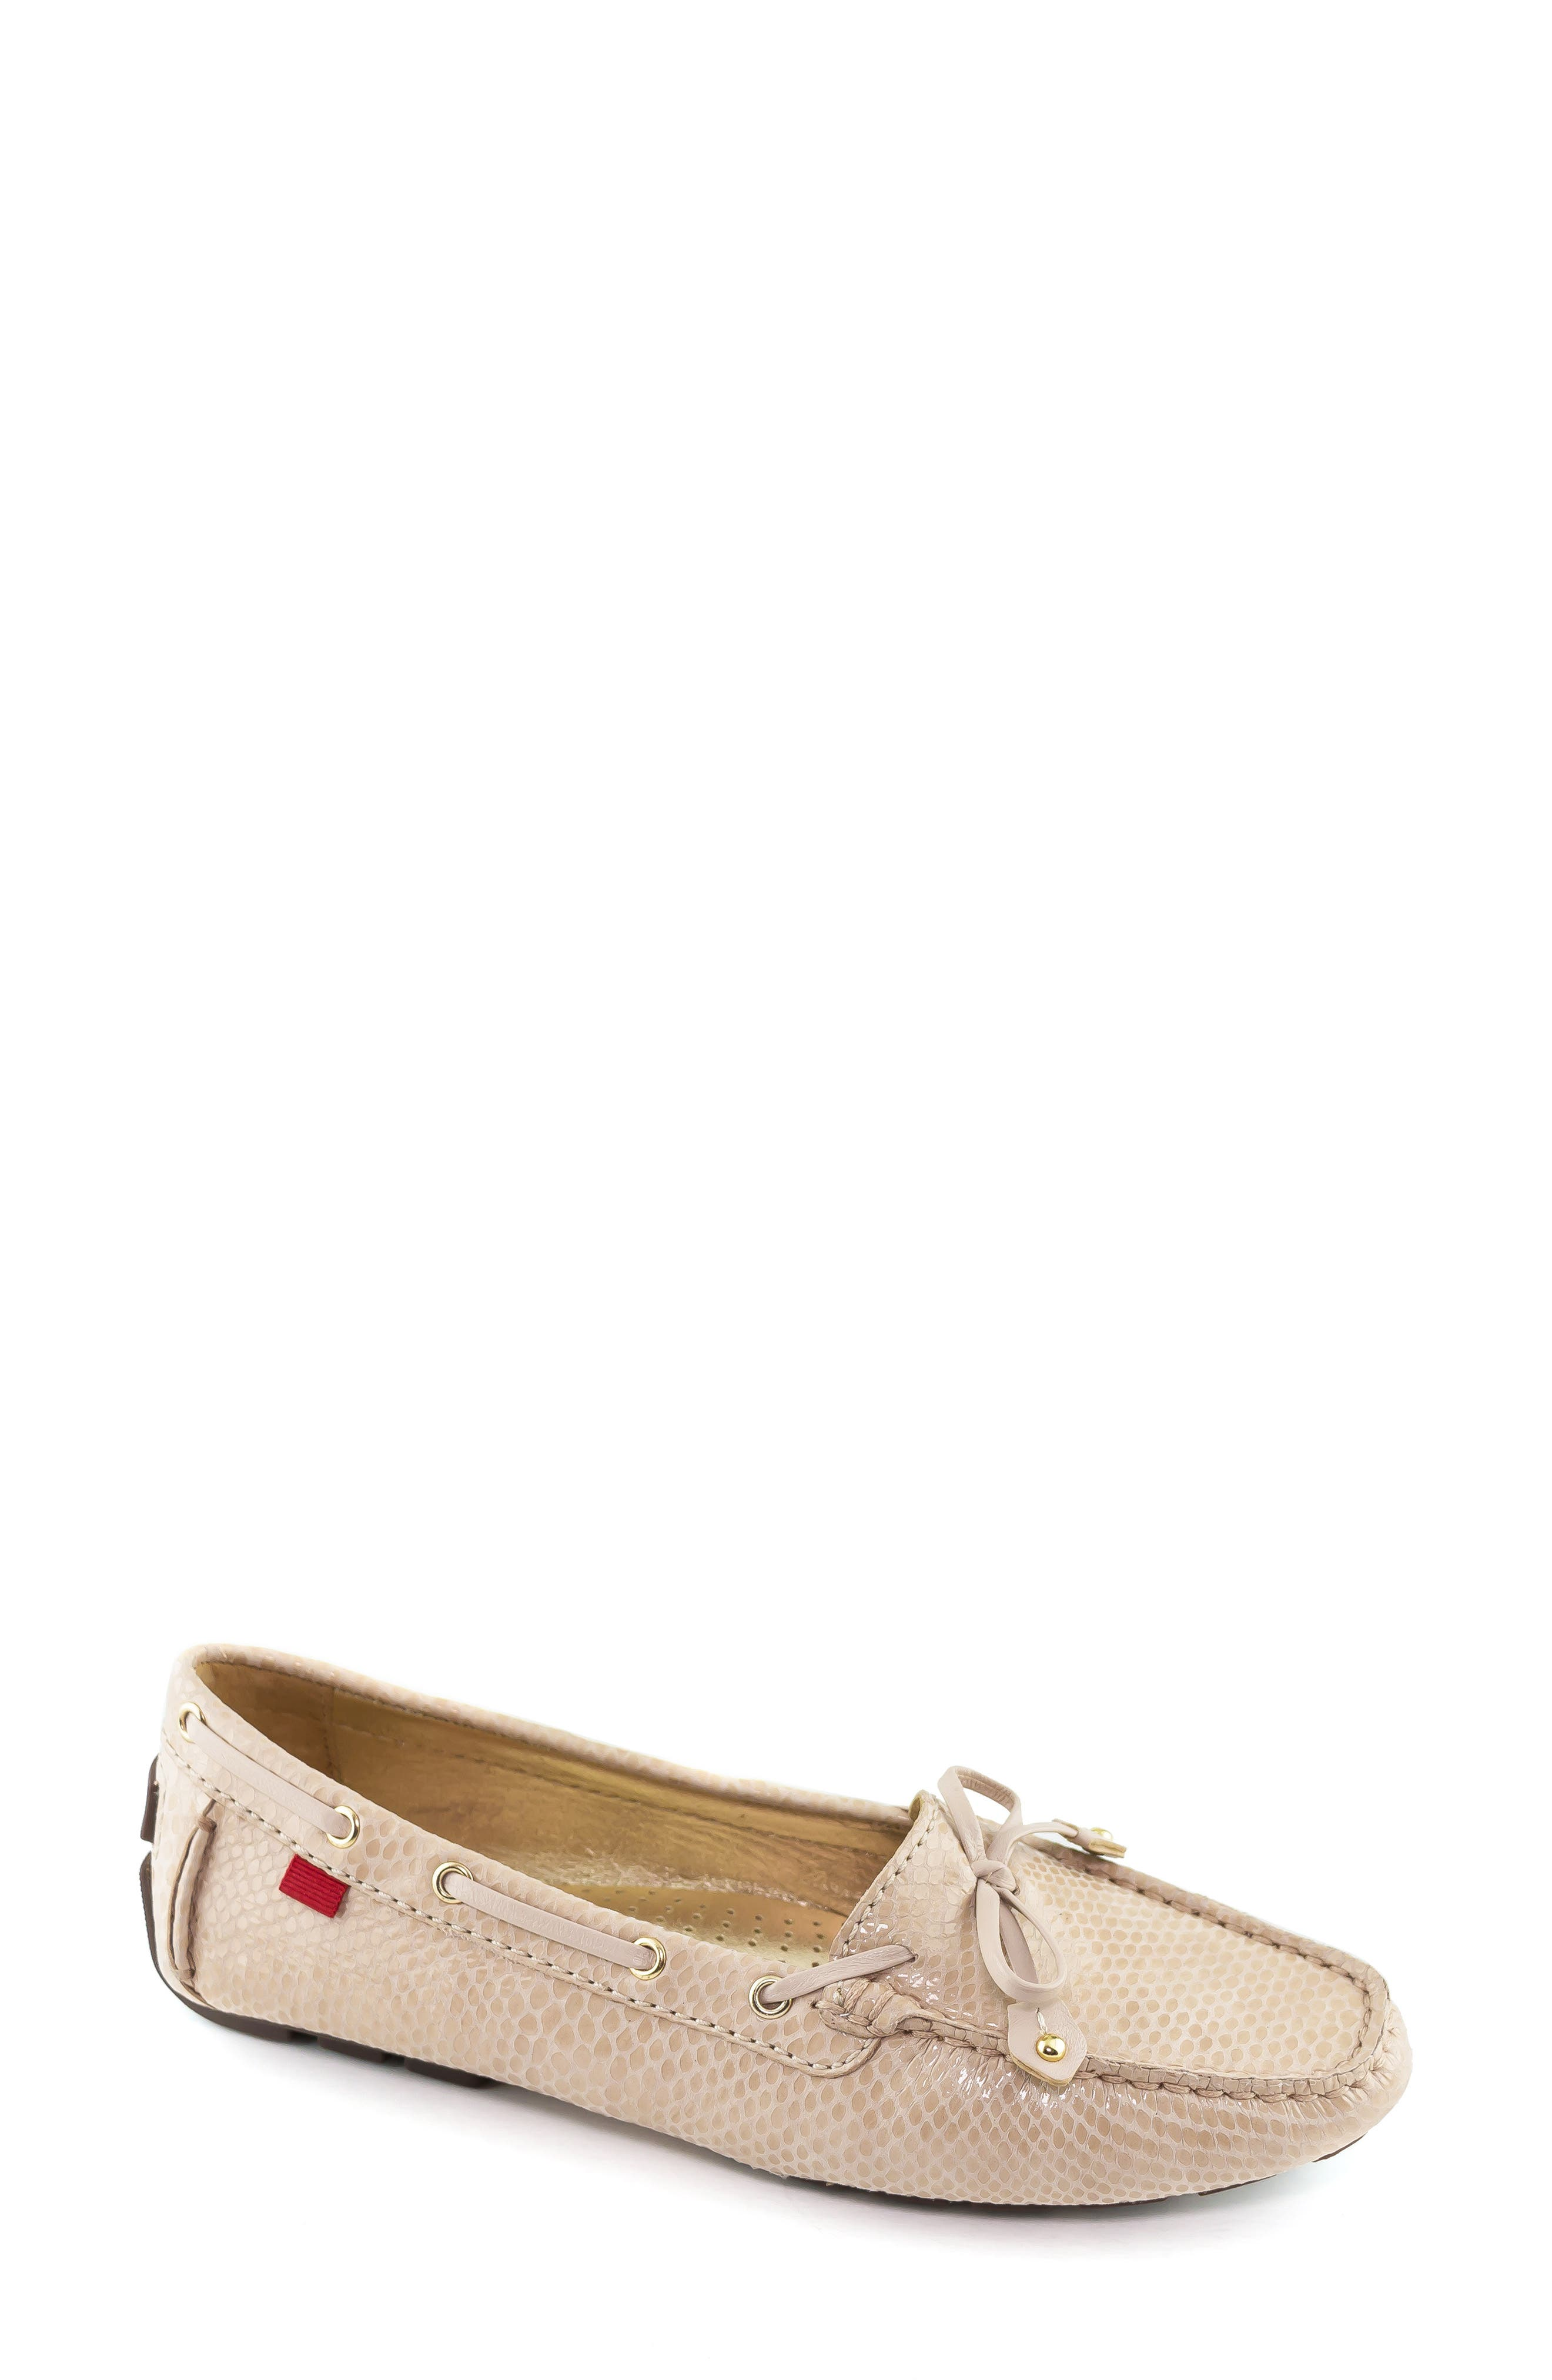 'Cypress Hill' Loafer, Main, color, BLUSH SNAKE PRINT LEATHER